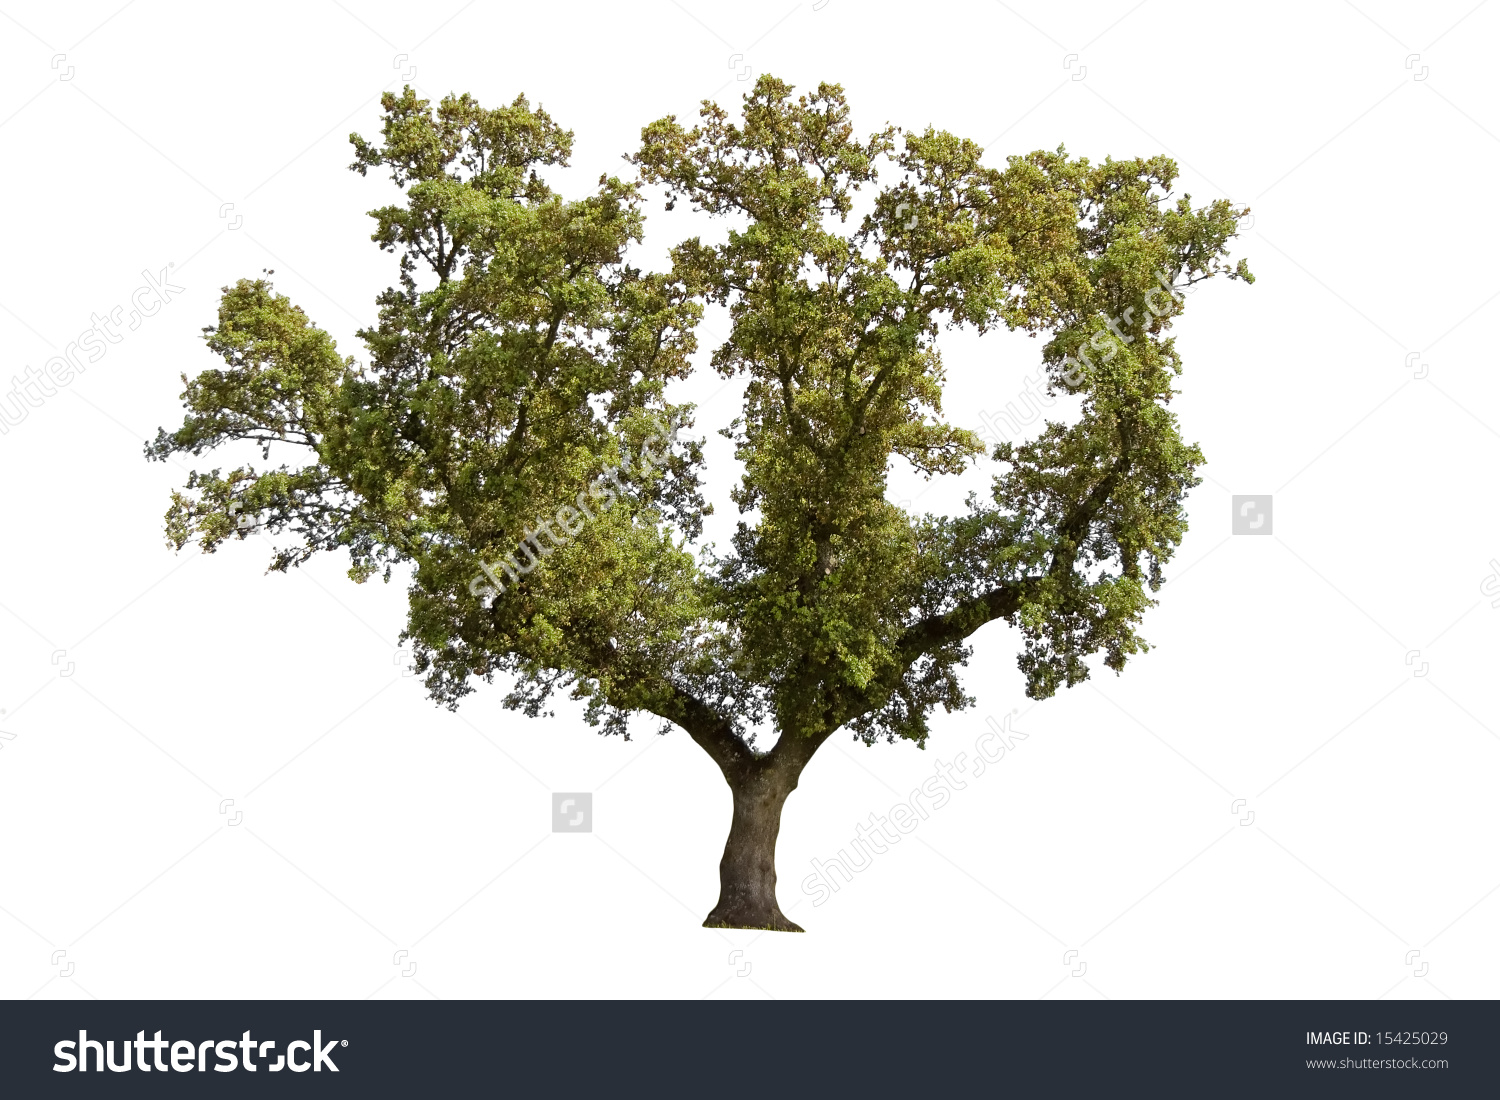 Holm Oak Isolated On White Background Stock Photo 15425029.